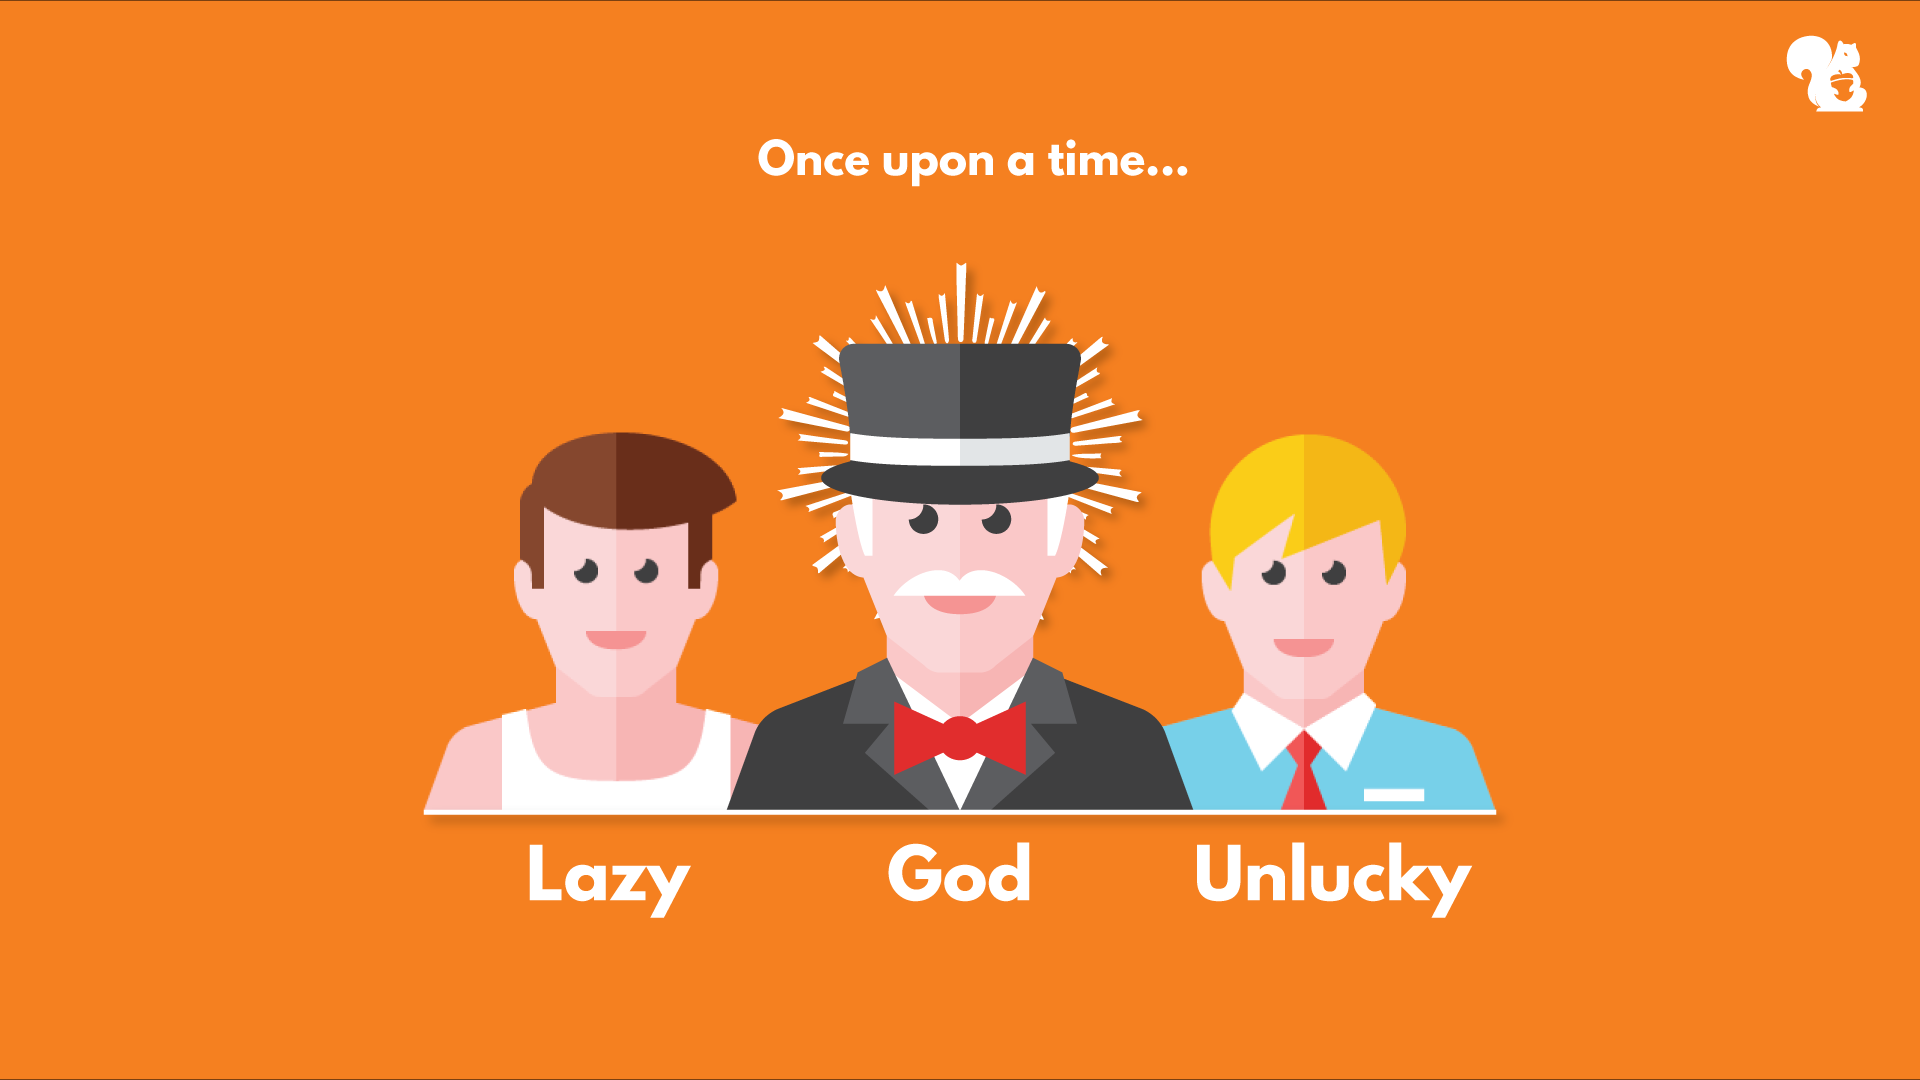 once upon a time, god, a lazy guy and an unlucky guy started investing